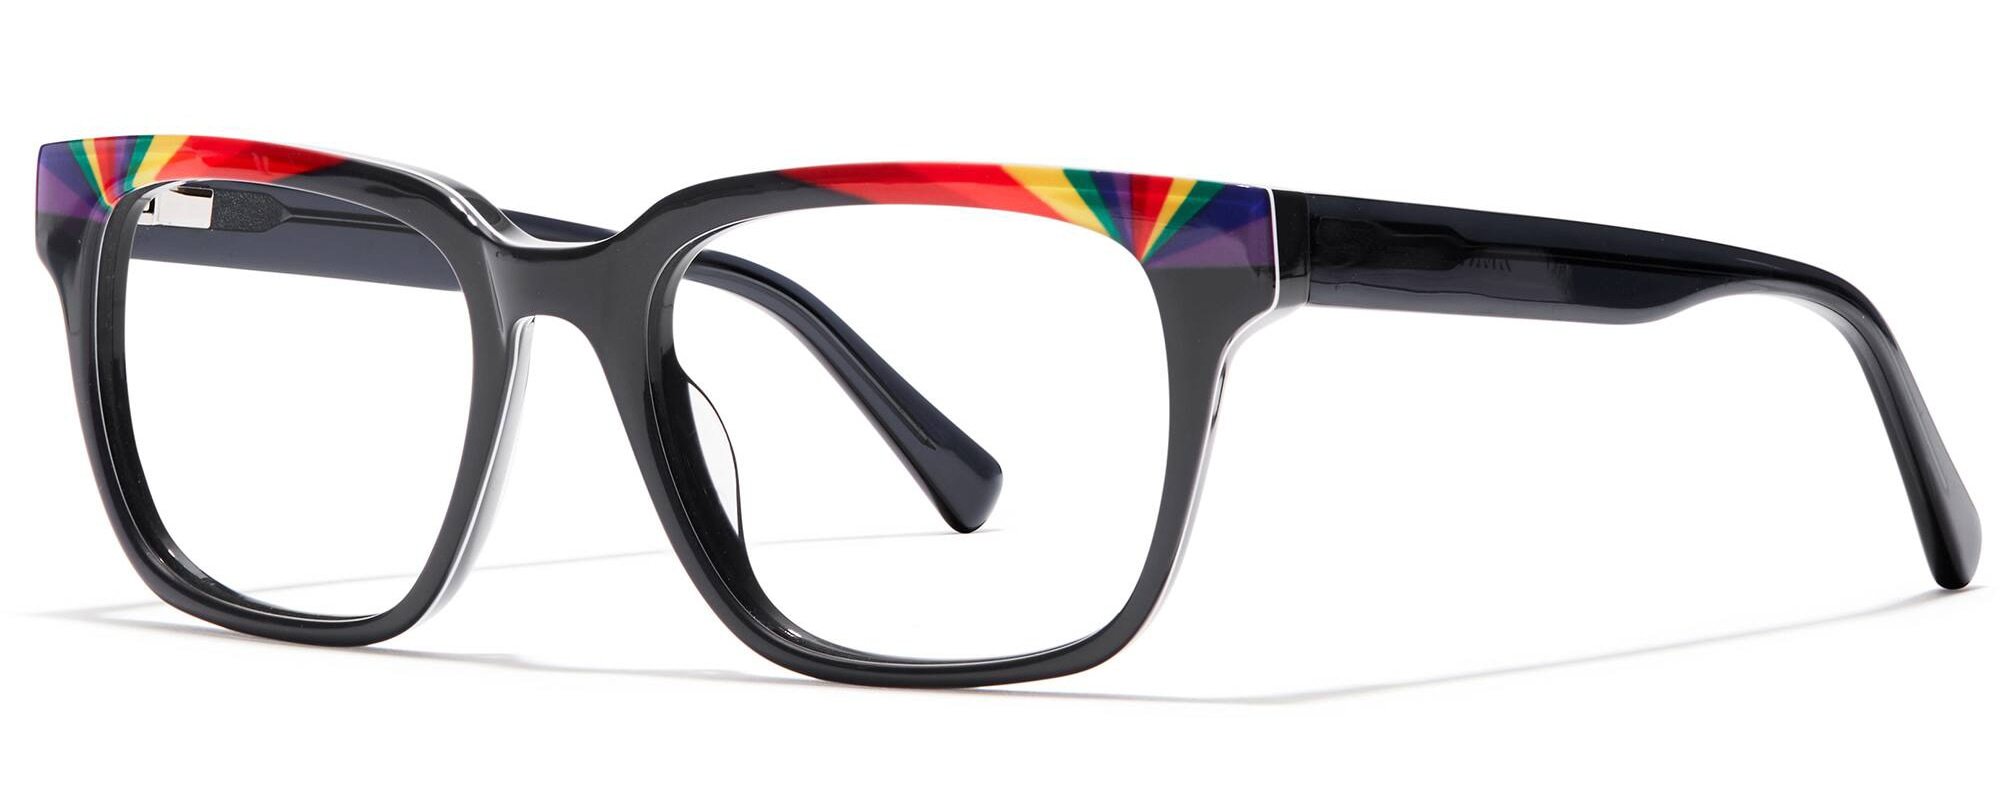 Angled view of Square Glasses in rainbow #4439916